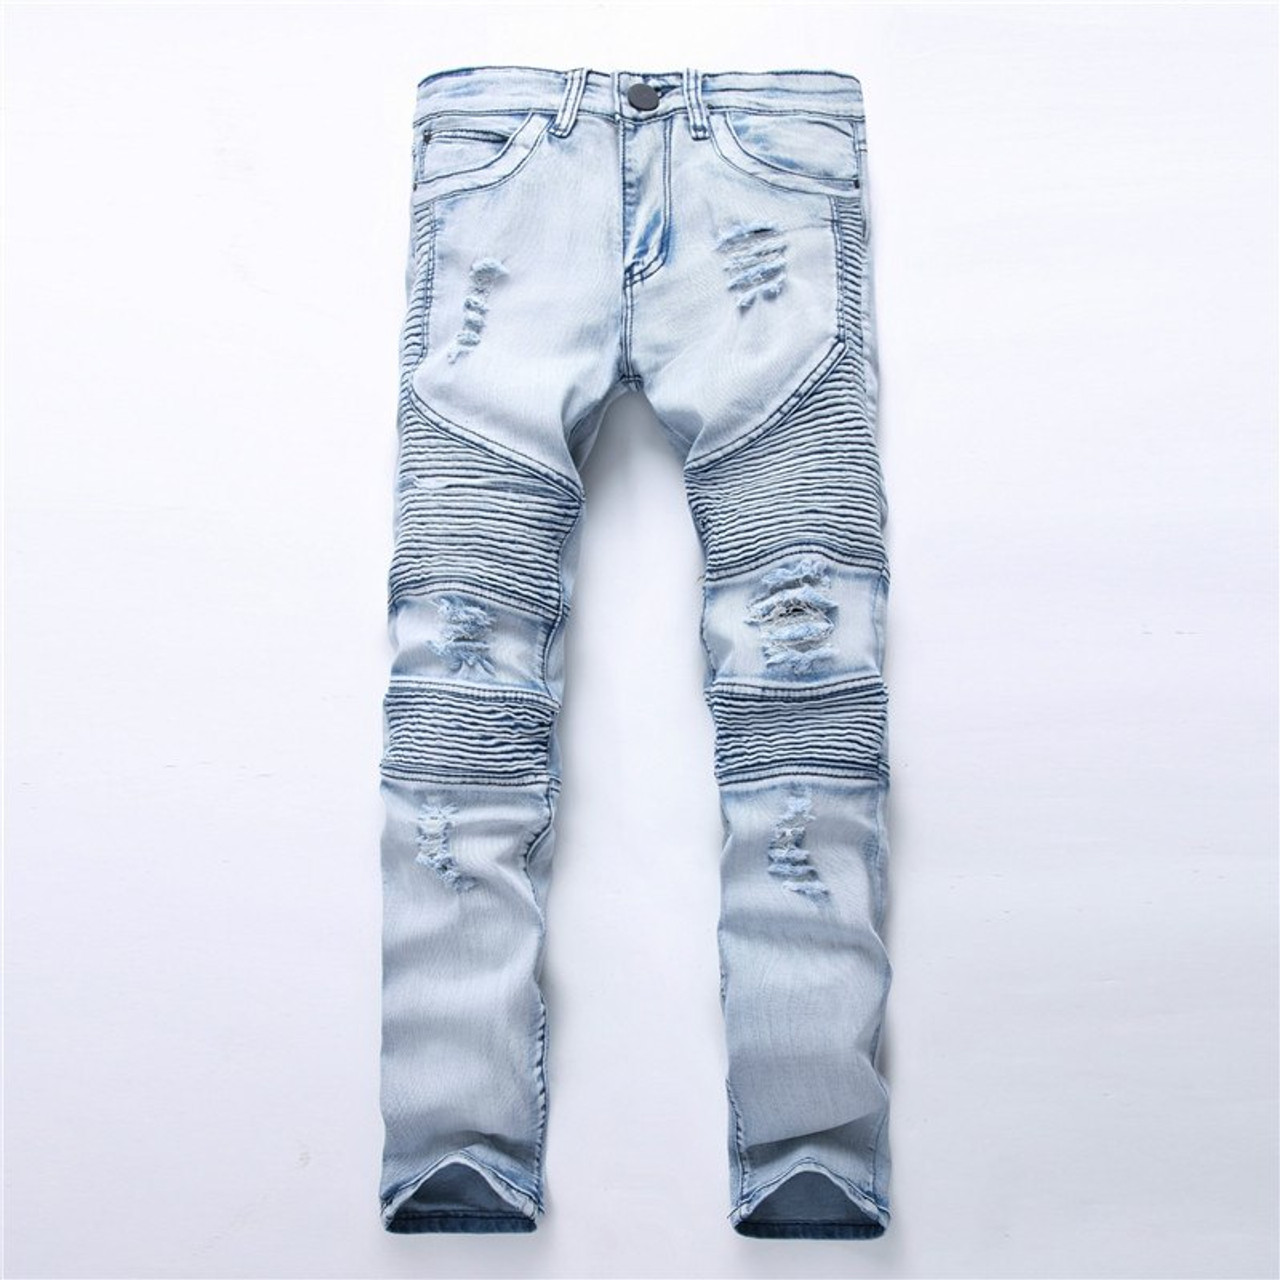 7cdfe4c0fbc ... Dropshipping Men Washed Hole Ripped Biker Jeans New Jeans Men Fashion  Casual Slim Fit Hip Hop ...